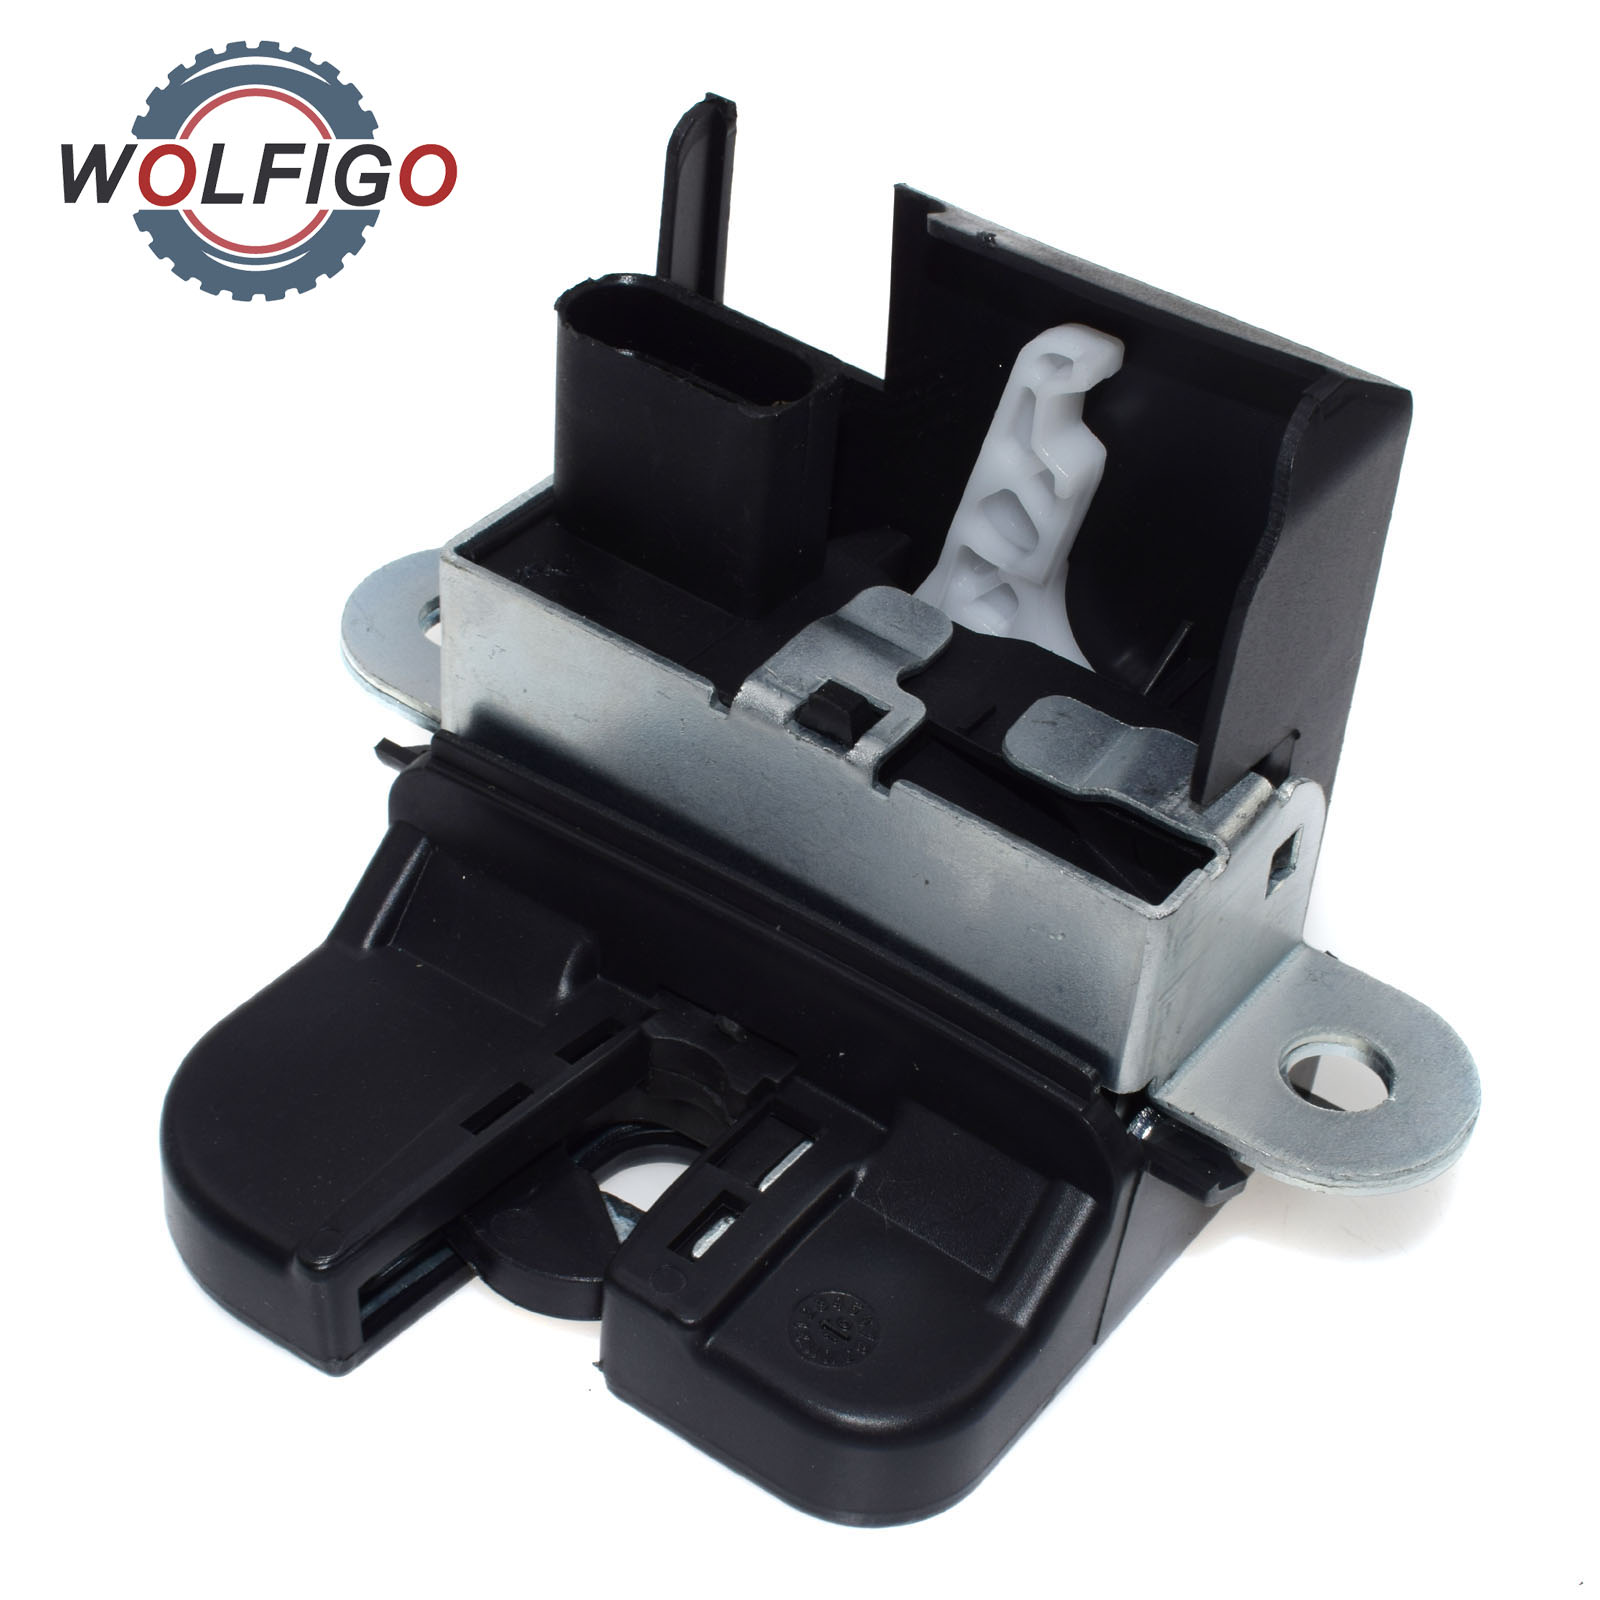 small resolution of wolfigo new tailgate boot rear trunk lid lock latch 1t0827505h 5k0827505a for vw volkswagen touran 2003 2015 golf passat in trunk lids parts from